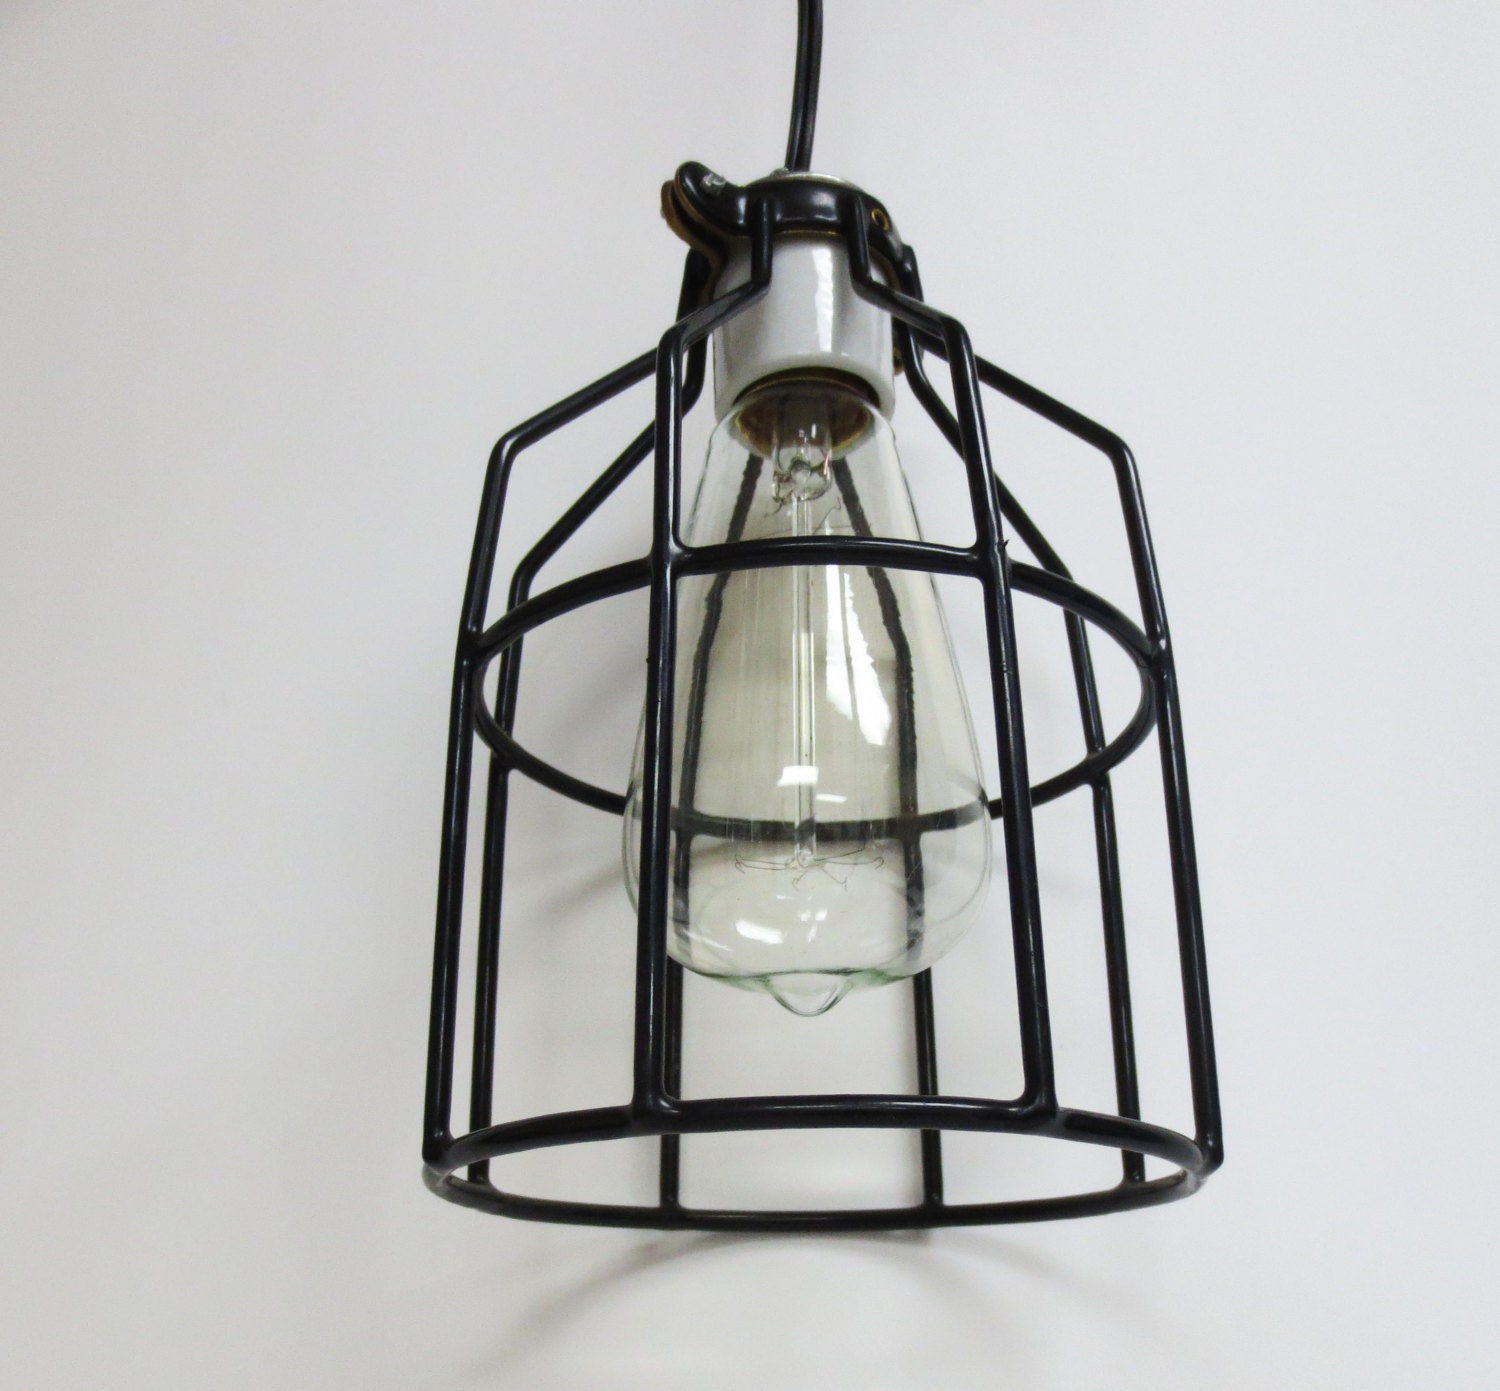 Hanging Light Fixture With Industrial Cage In Black Finish And